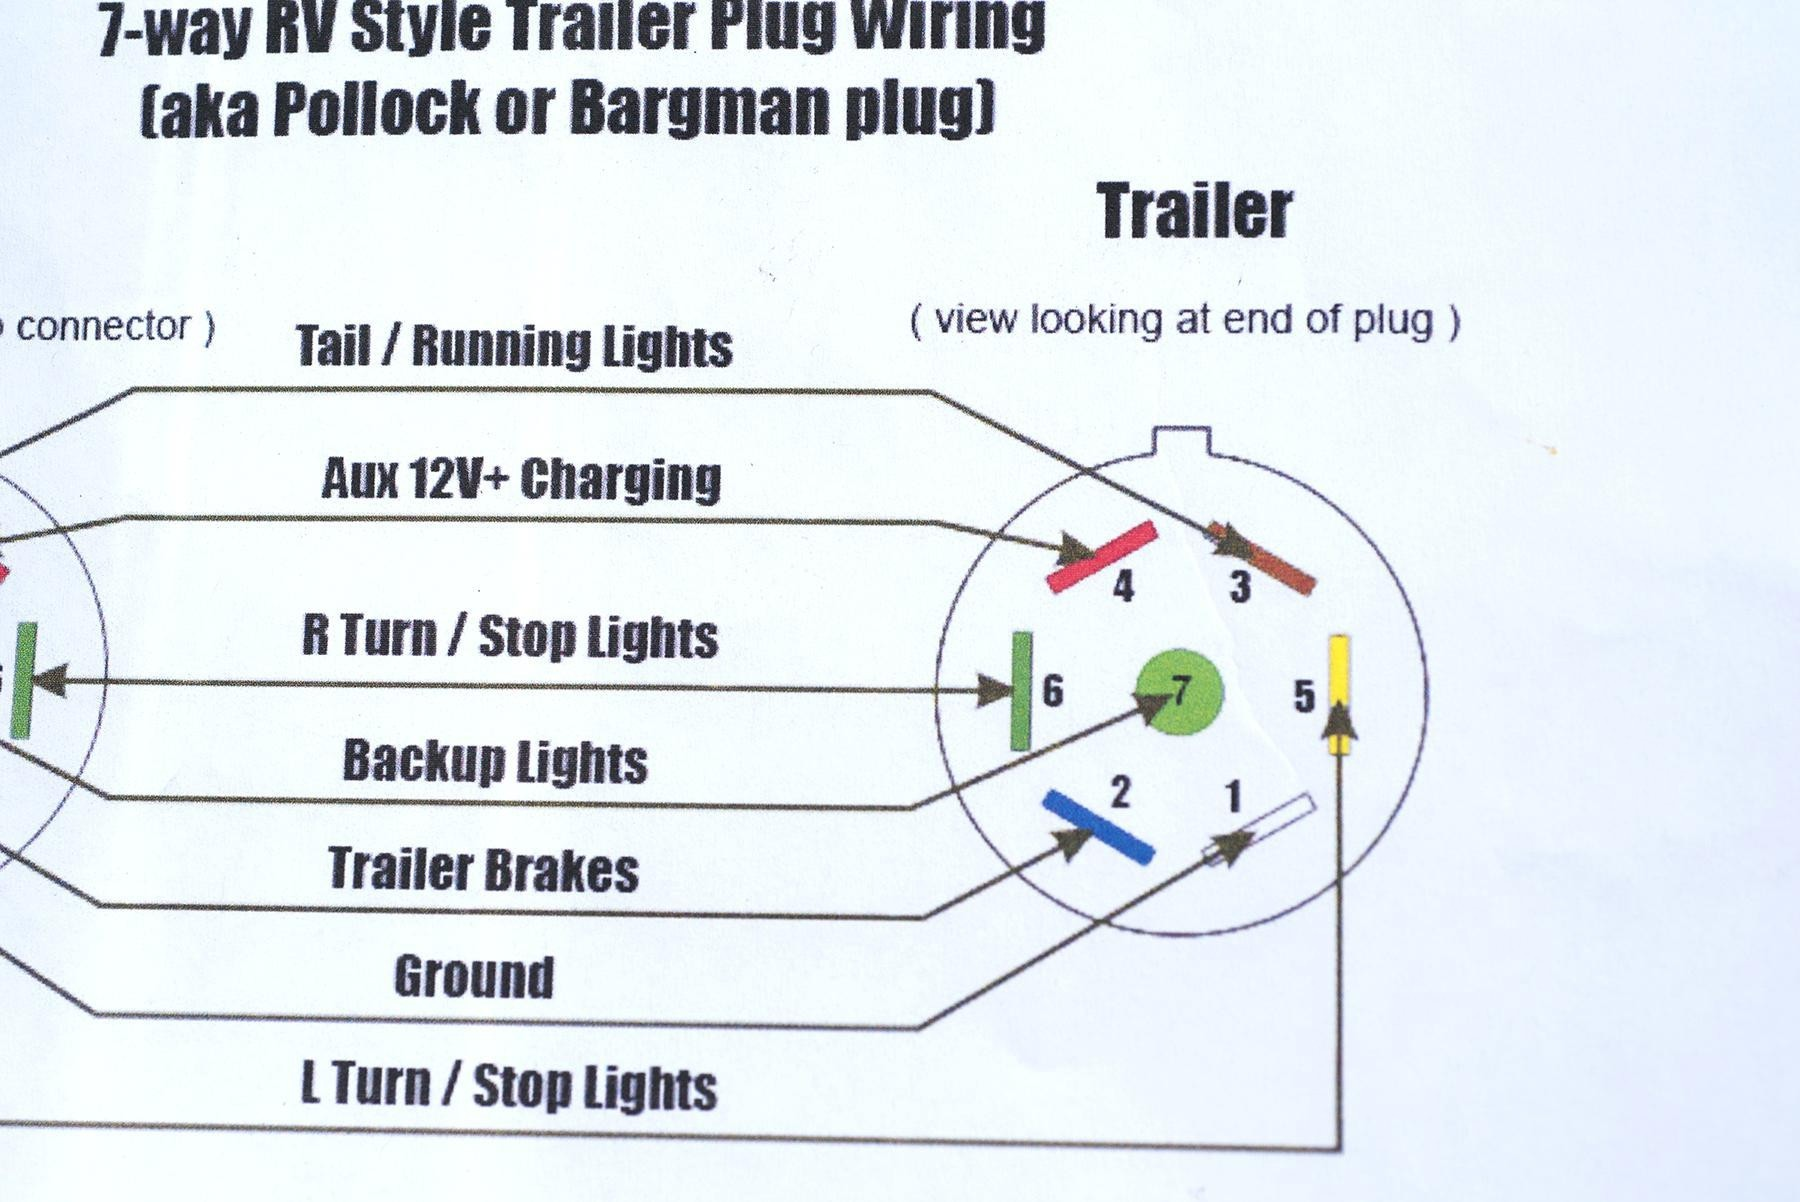 boat trailer lights wiring diagram wiring diagram semi trailer rh detoxicrecenze com Wabco ABS 4S 4M Wiring-Diagram ABS Plug Wiring Diagram